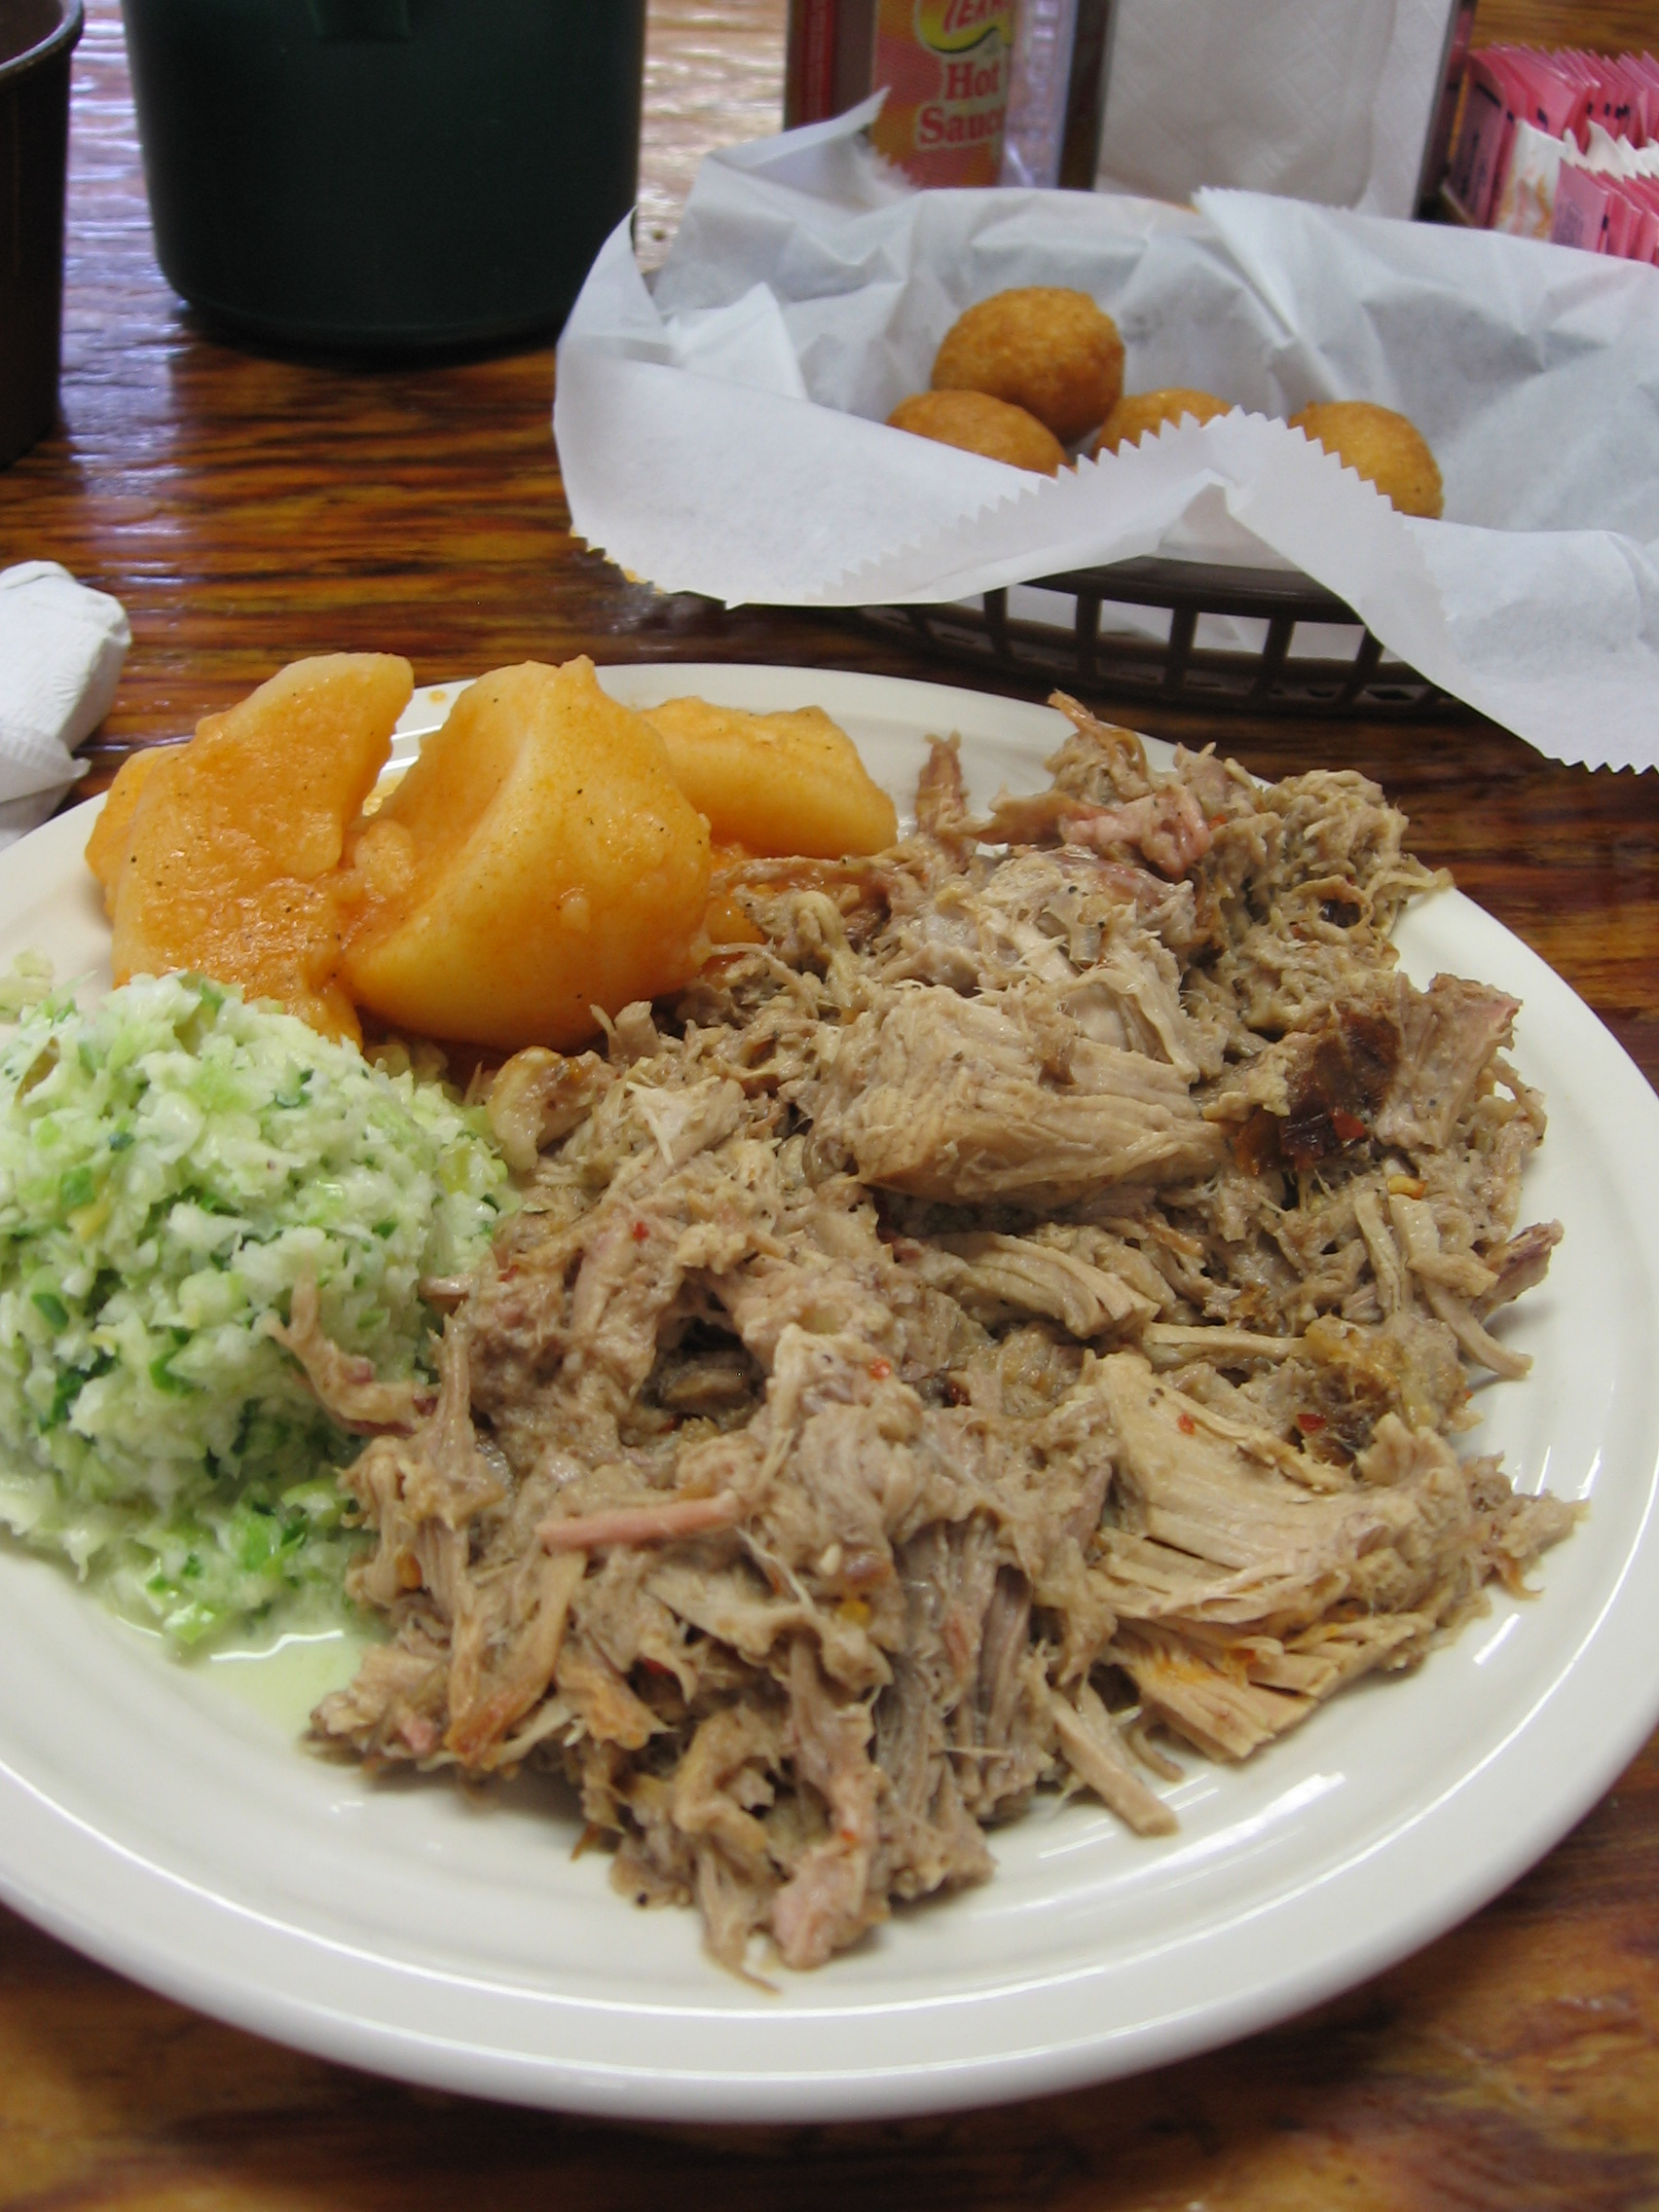 A good looking barbecue plate from Stephenson's.